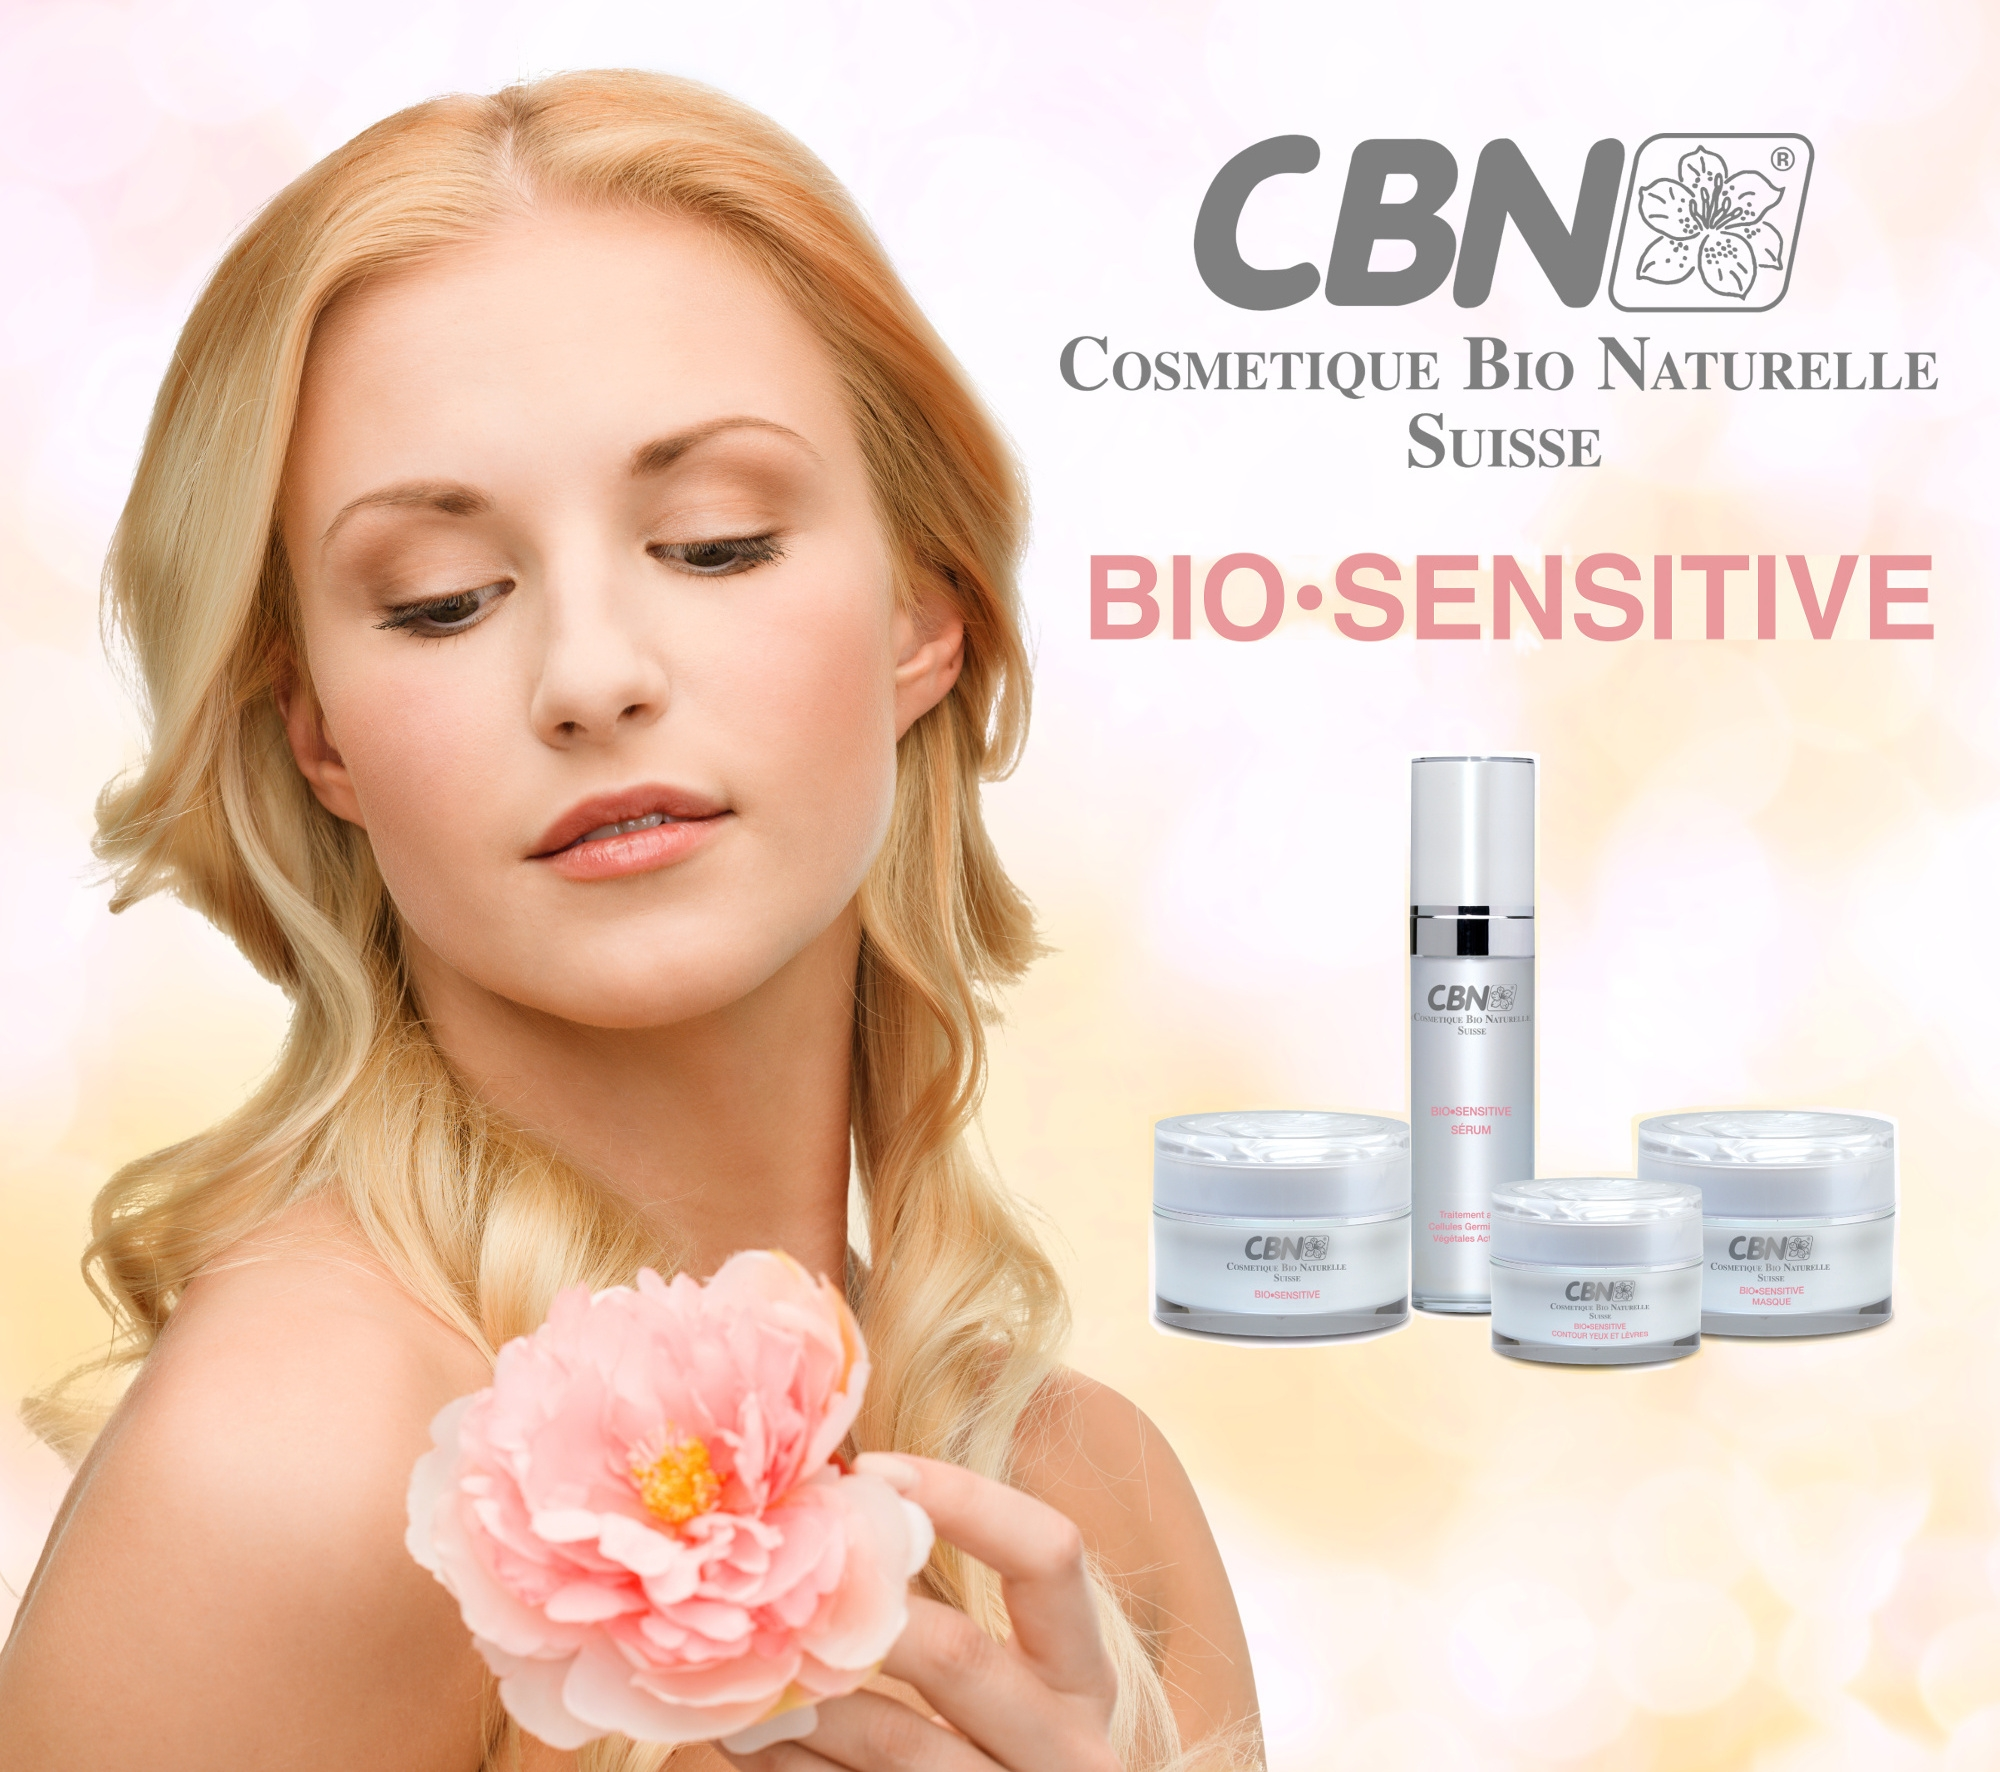 BioSensitive di CBN